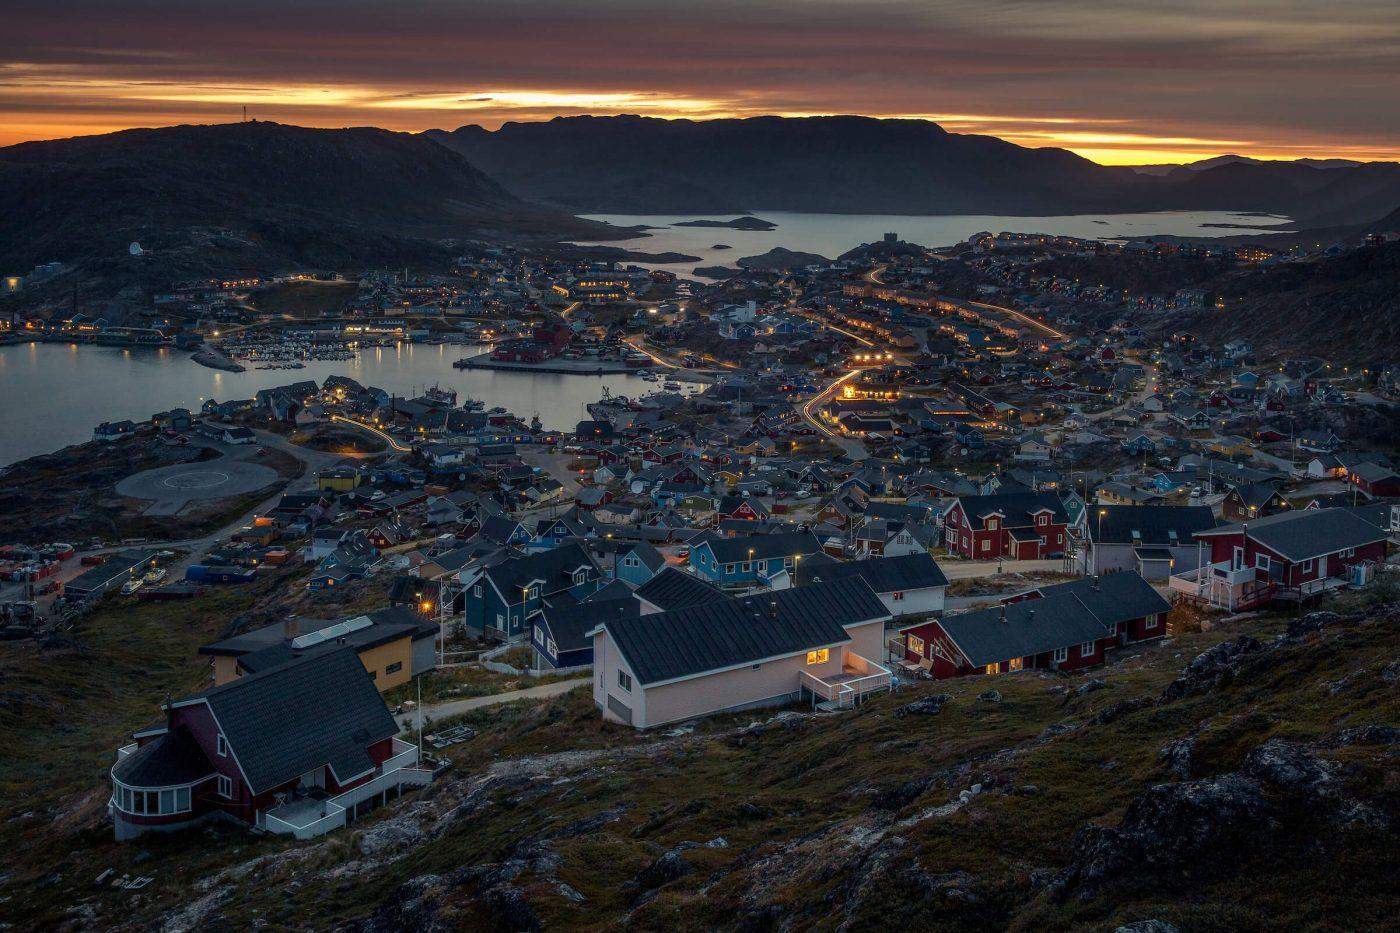 A nighttime panoramic view of Qaqortoq in South Greenland. Photo by Mads Pihl.